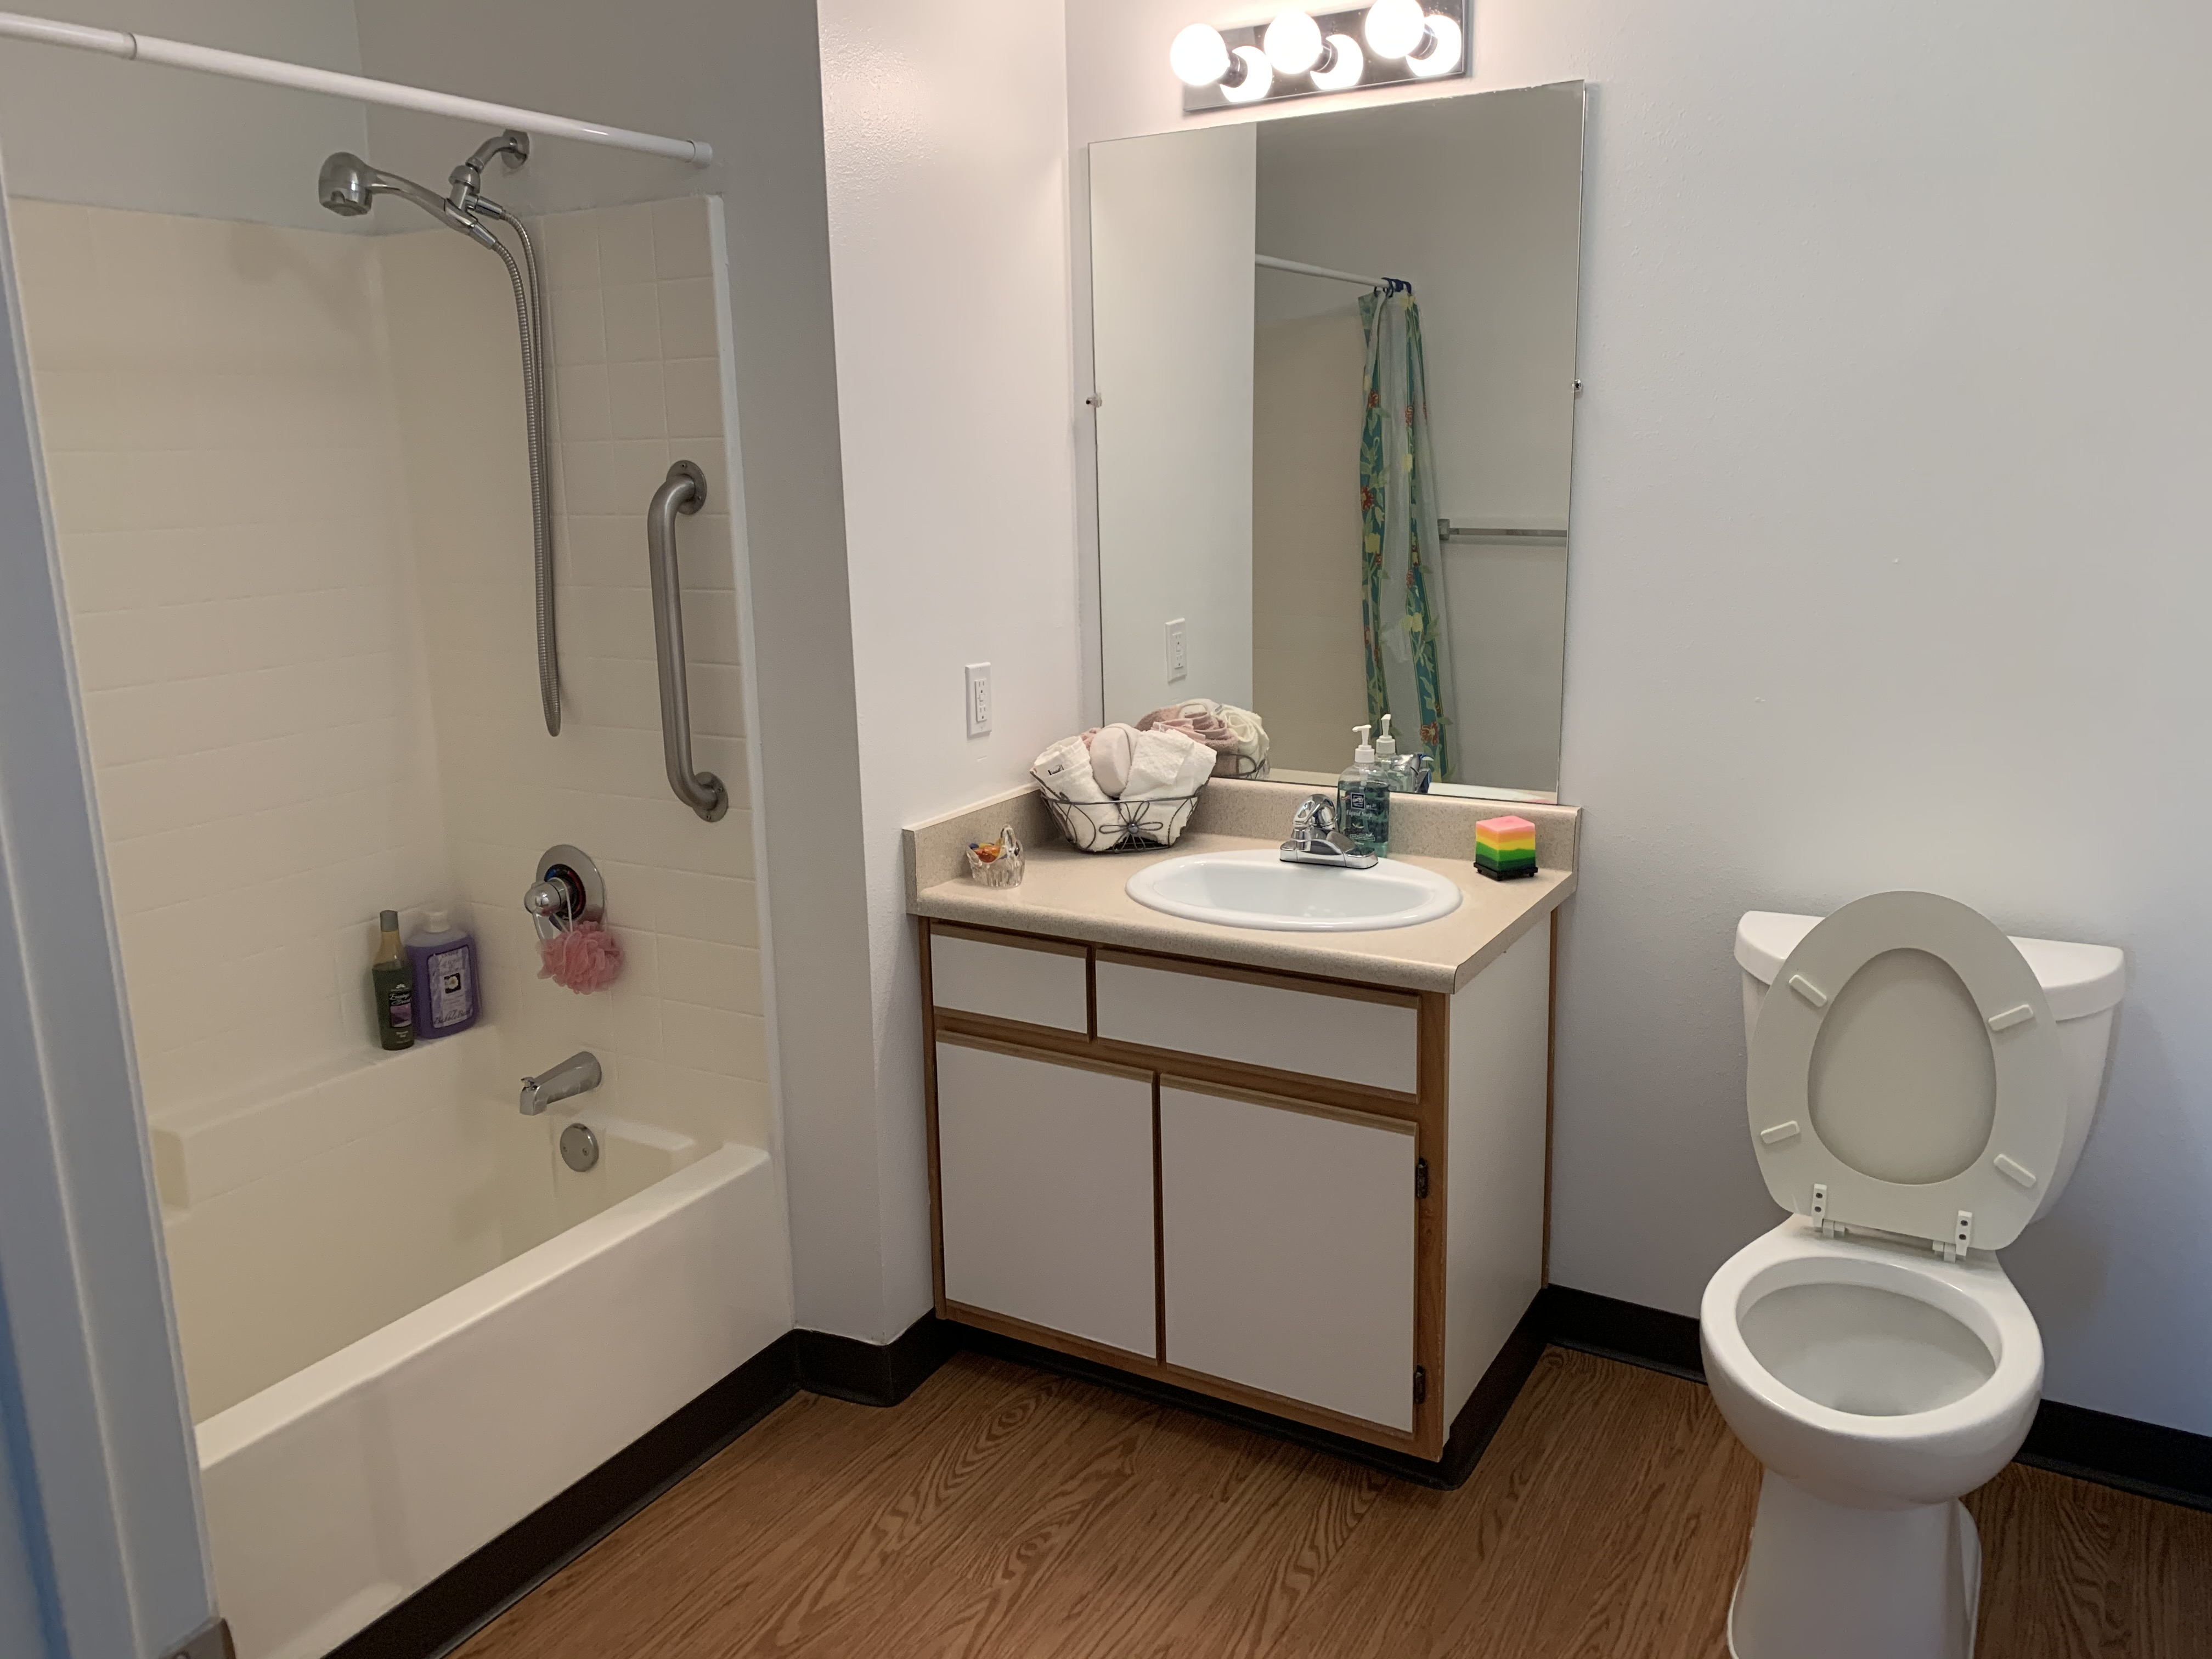 View of a bathroom. The bathtub has a grab bar and the shower head has hose. Next to it is a sink with lower canbinet, a mirror above it, and three light bulbs above the mirror, and a toilet next to the sink Room has wood flooring.